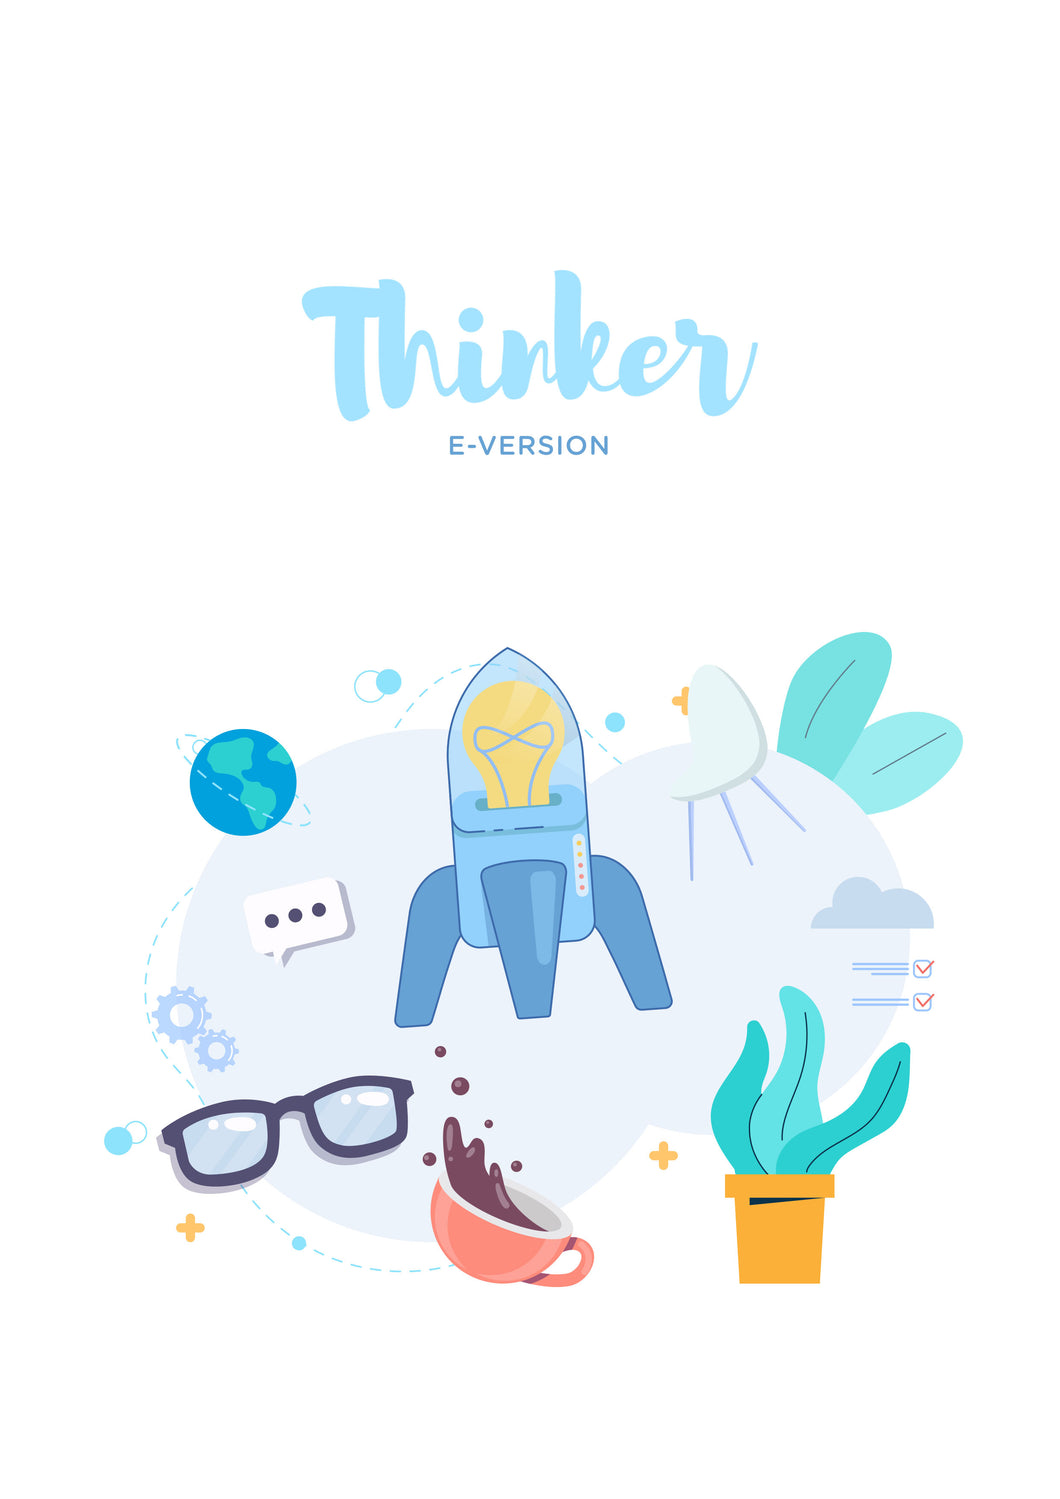 THINKER E-VERSION